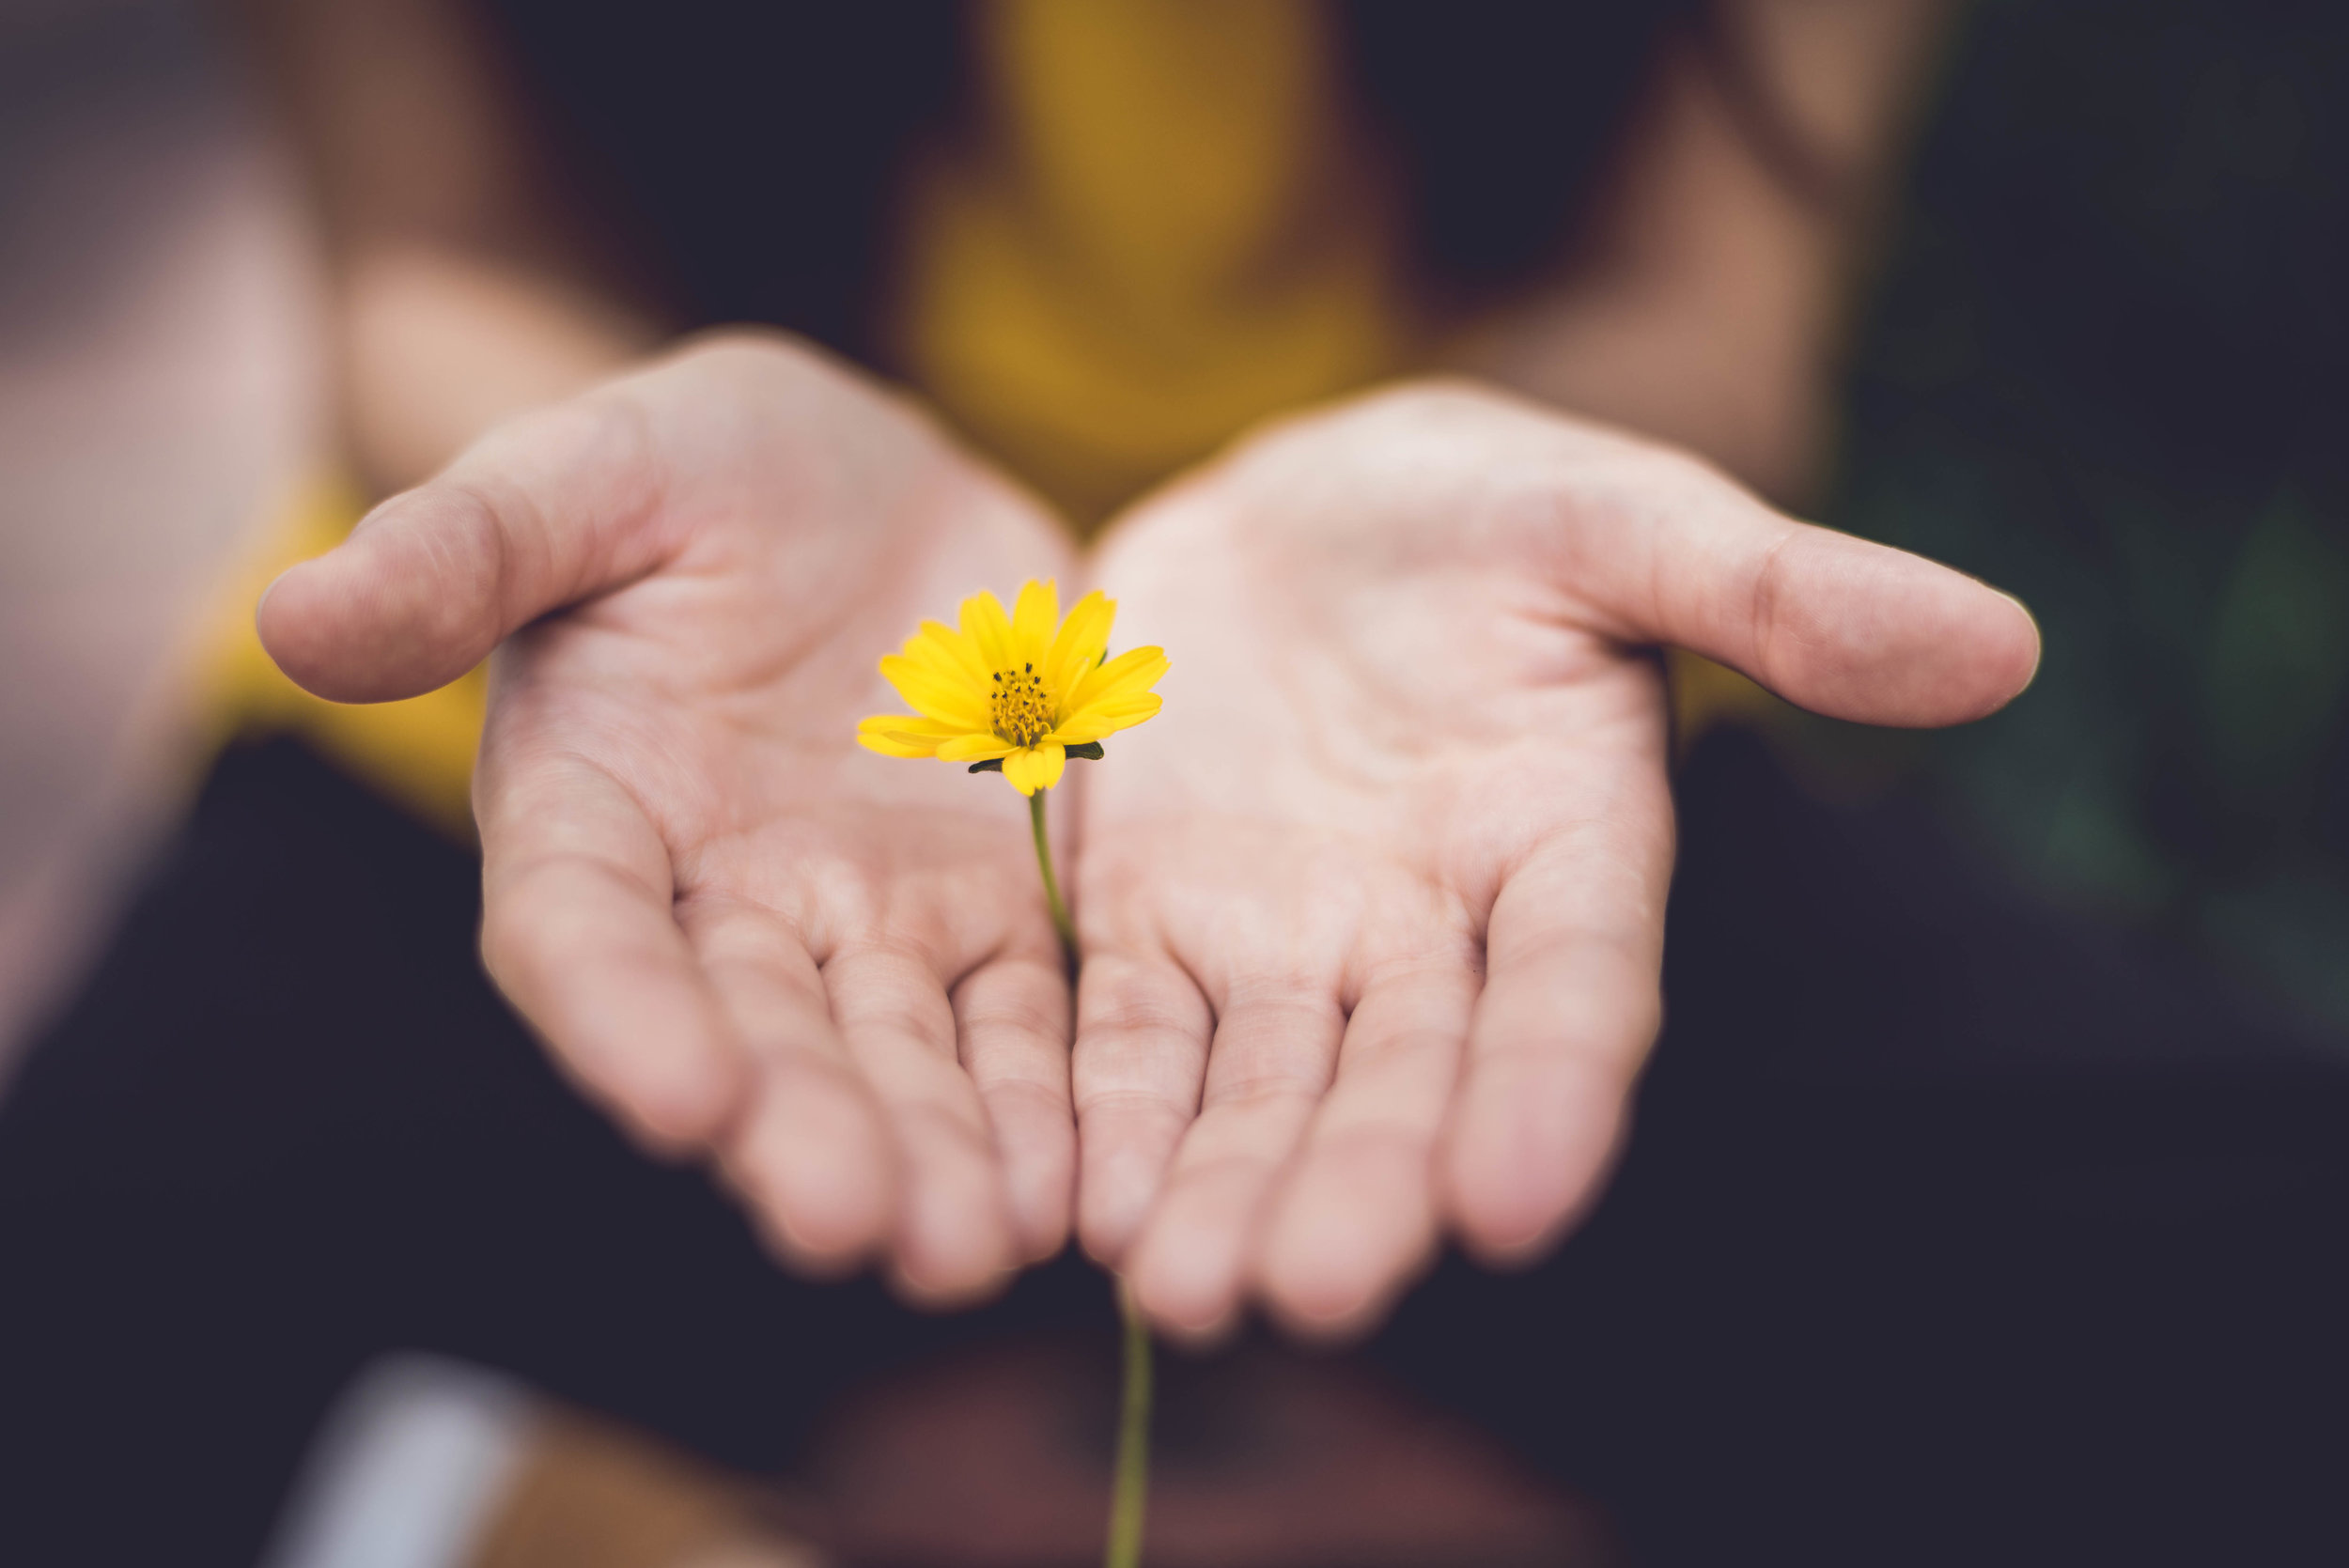 Forgiveness doesn't mean you forget, but that you can move forward and not let a person or situation have control of your emotions and actions.